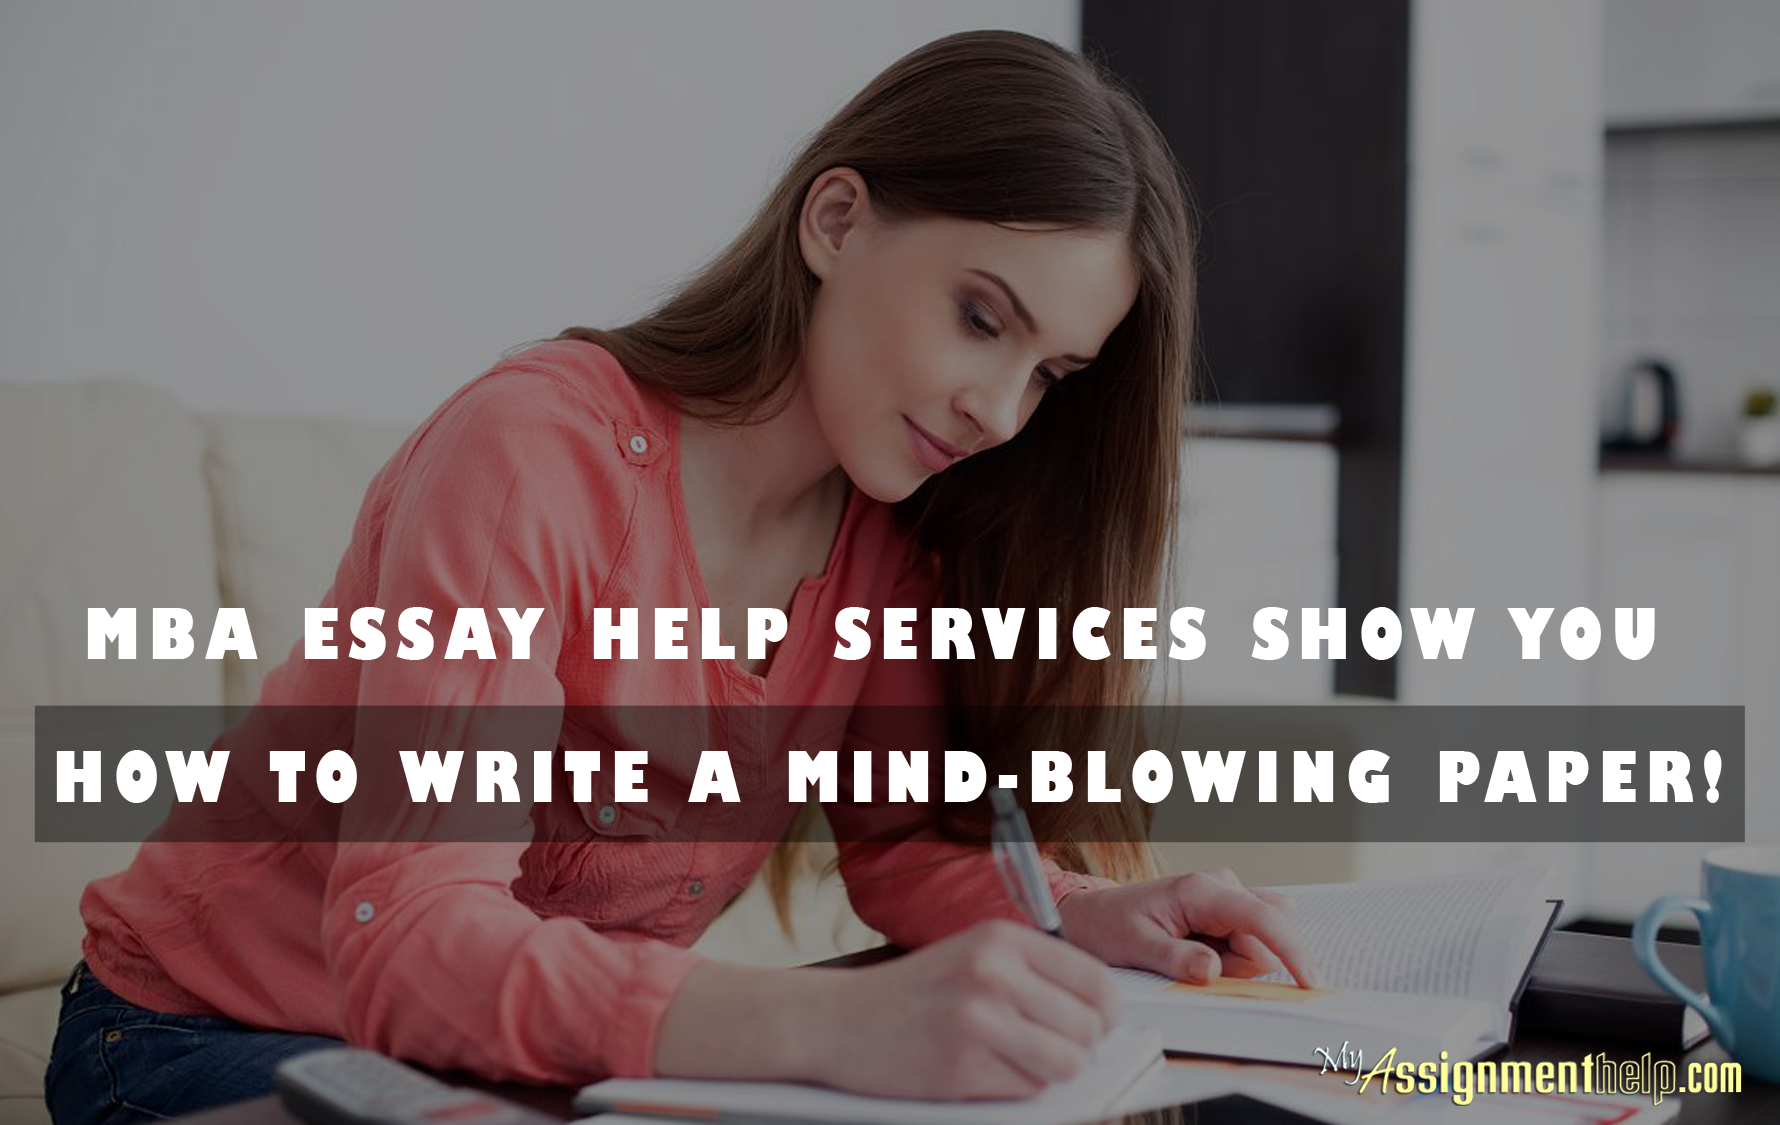 mba essay help services show you how to write a mind blowing paper mba essay help